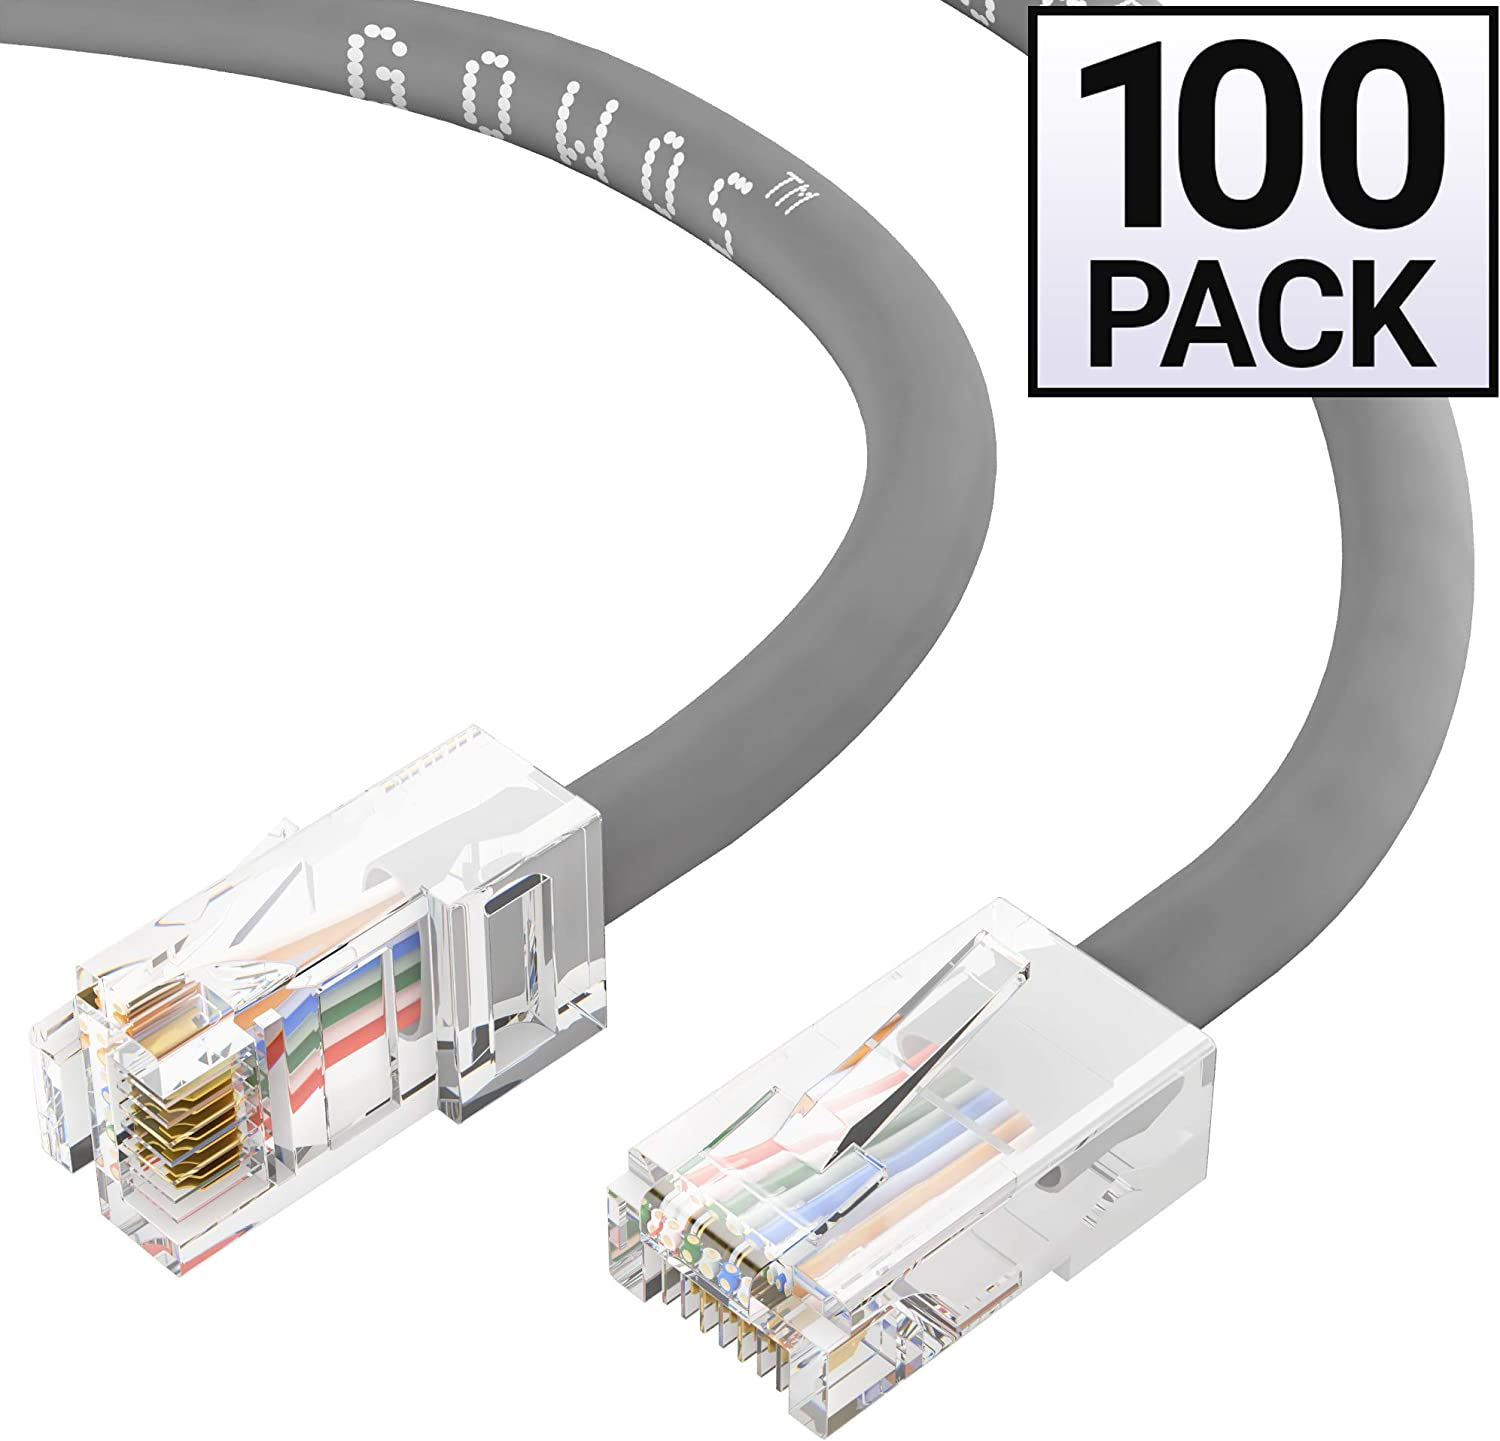 Computer Network Cable with Bootless Connector UTP RJ45 10Gbps High Speed LAN Internet Patch Cord 5 Feet - Gray Cat5e Ethernet Cable Available in 28 Lengths and 10 Colors GOWOS 20-Pack